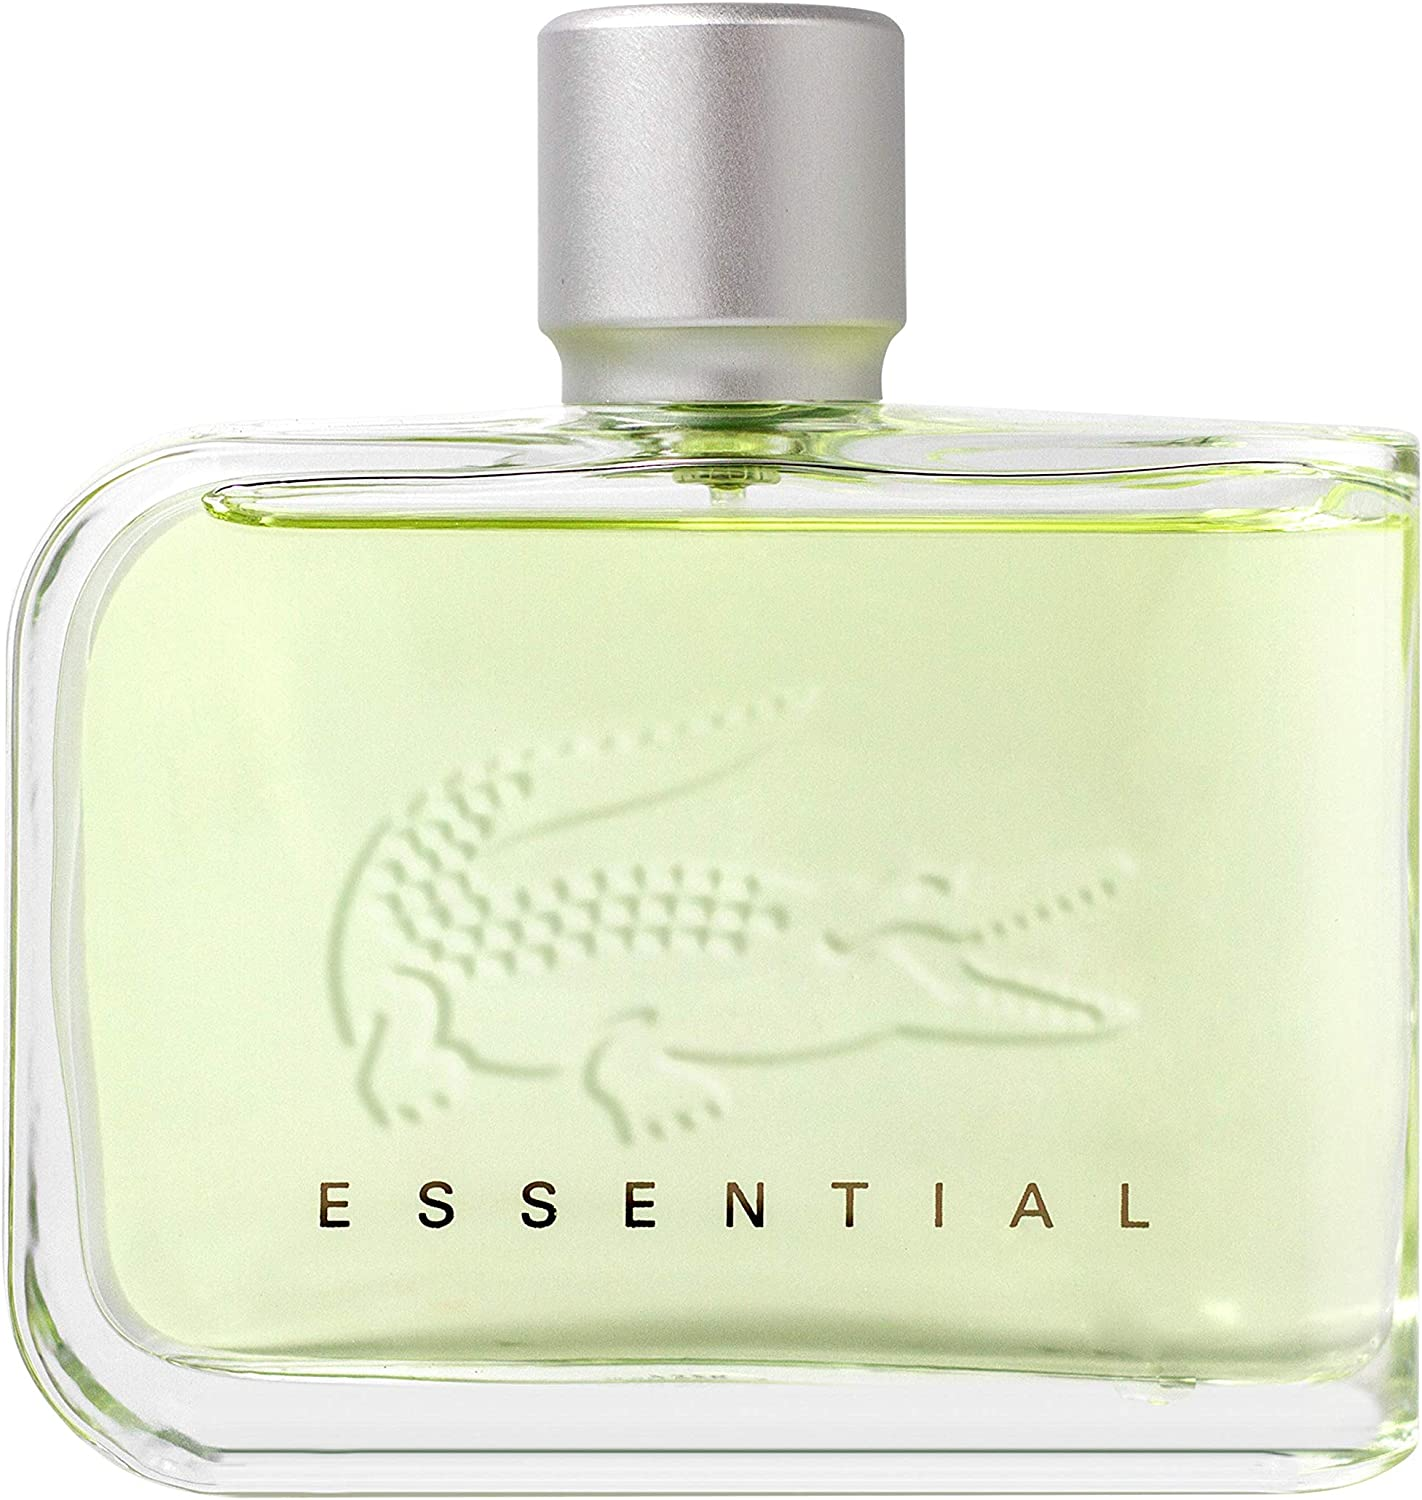 Lacoste 16217 - Agua de colonia, 125 ml